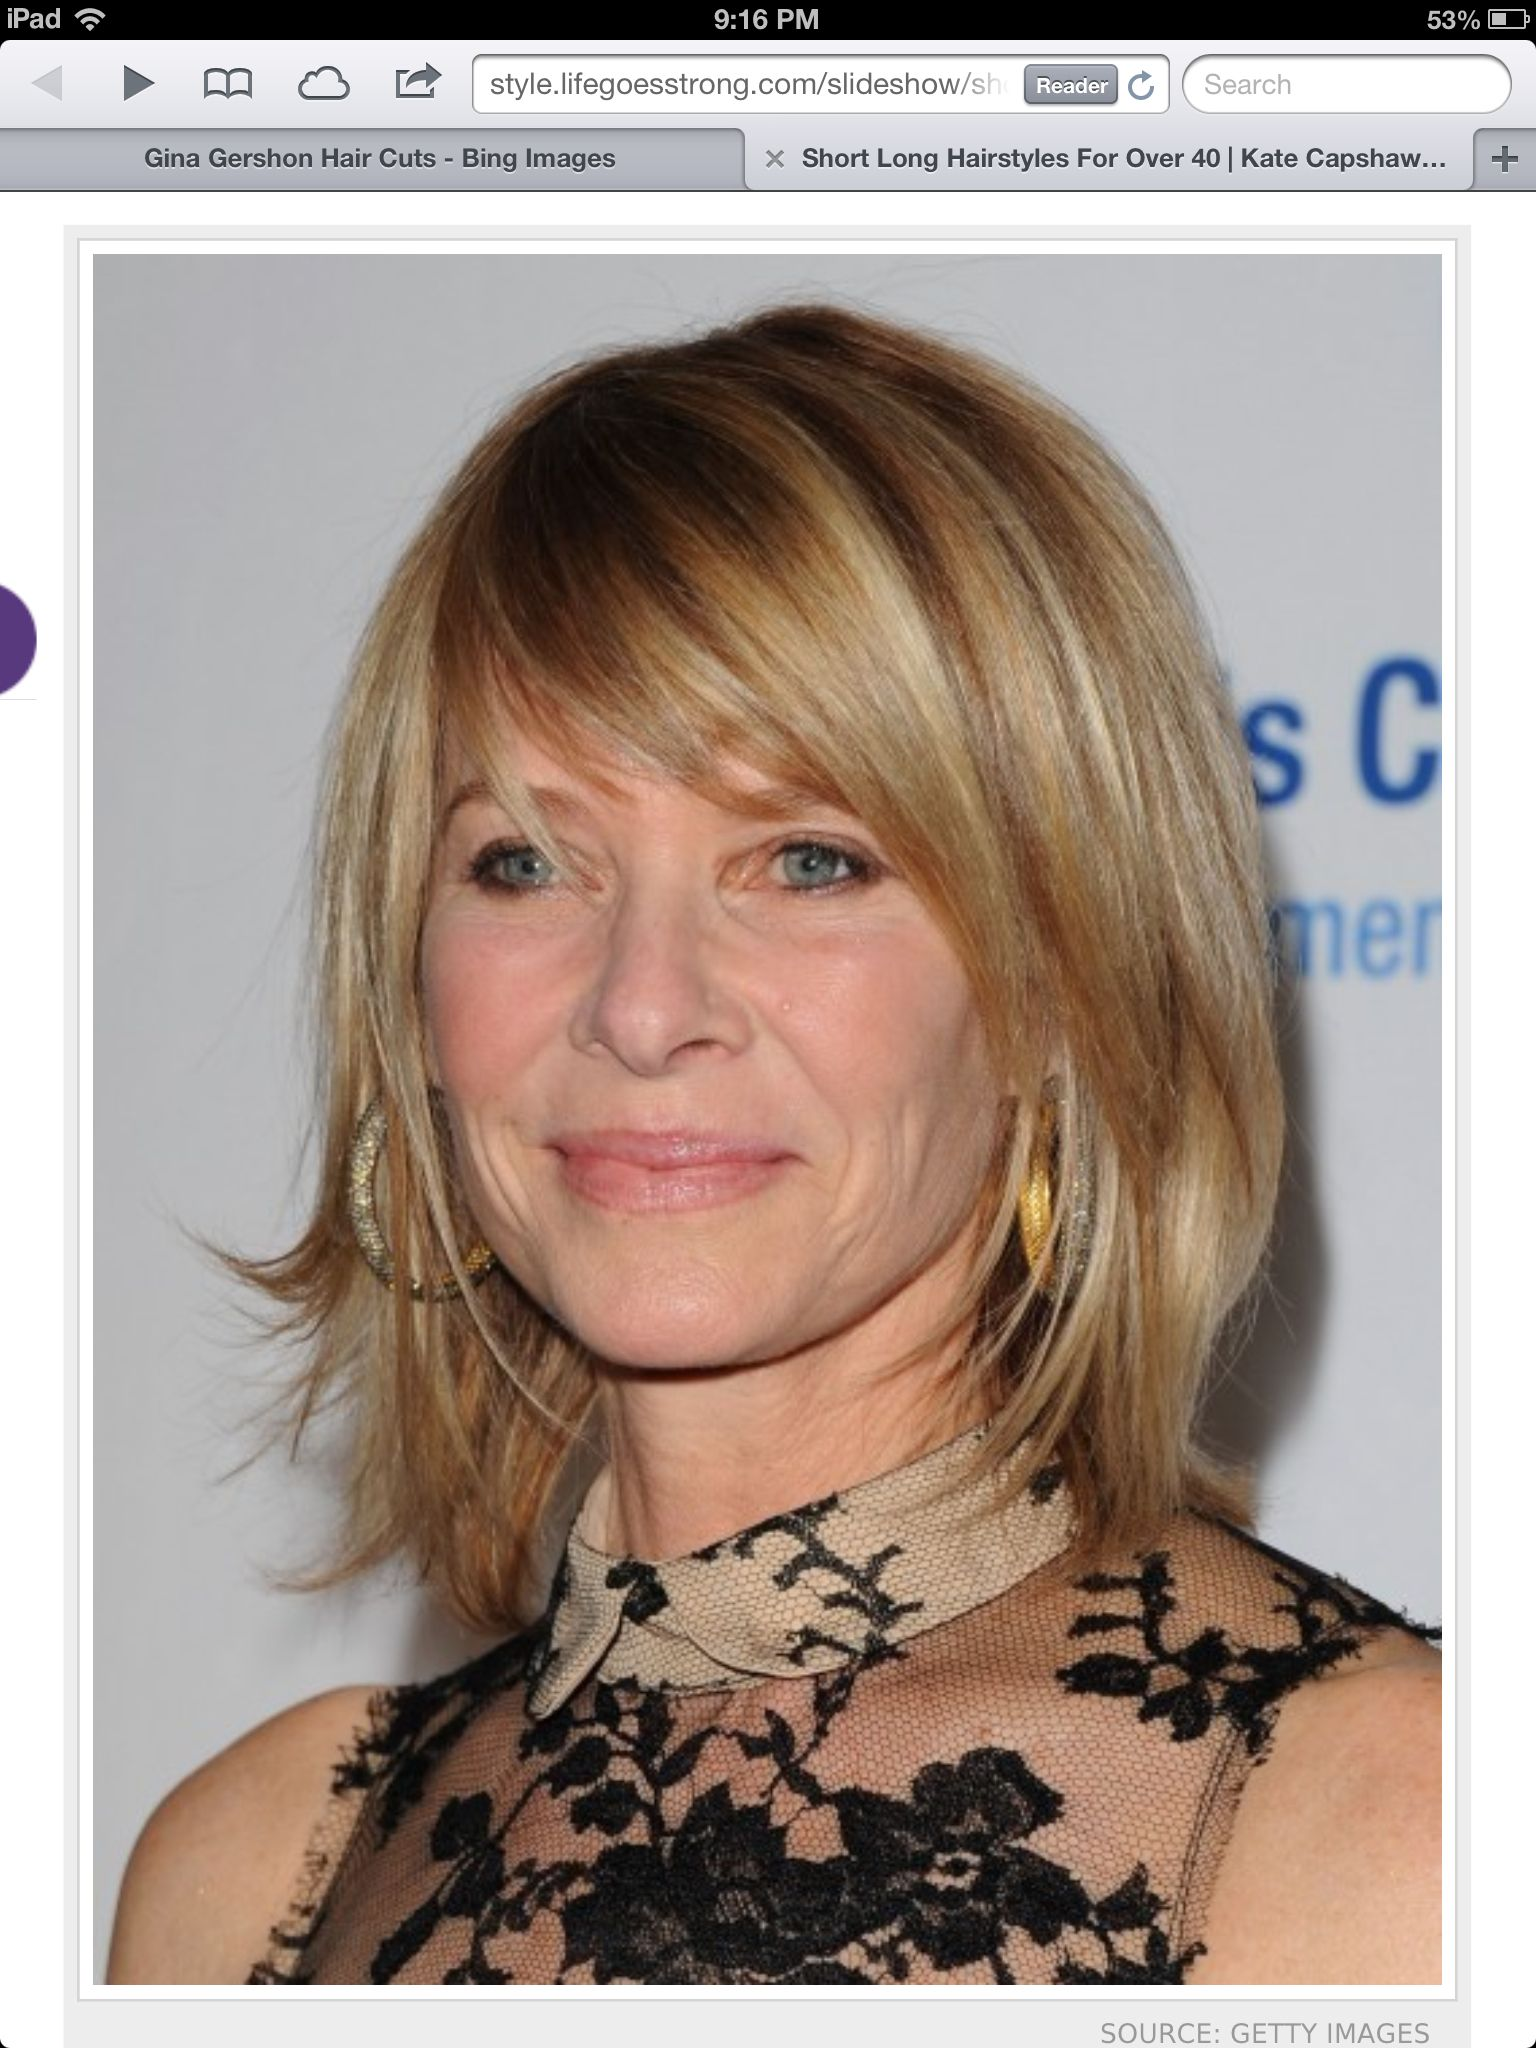 kate capshaw - awesome